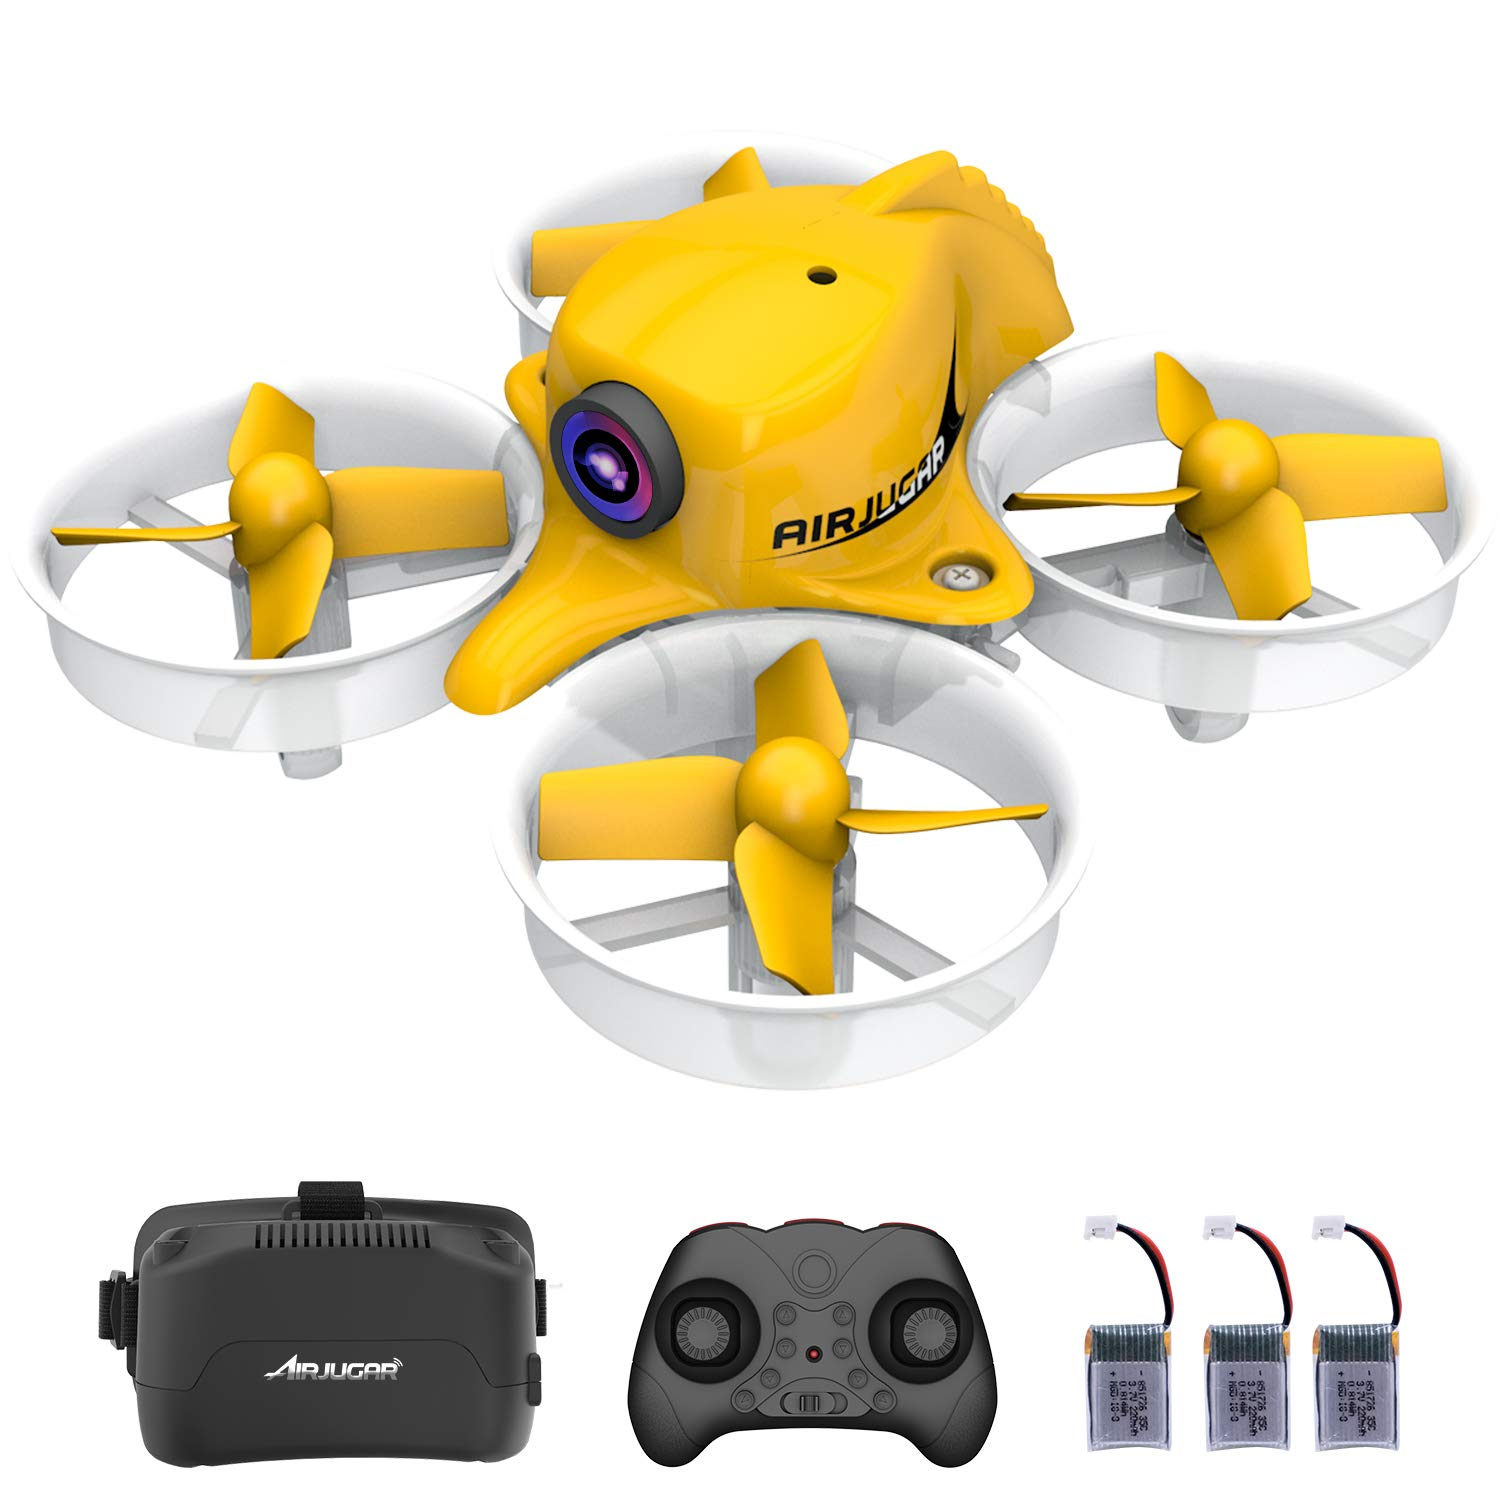 Mini FPV Drone Rc Nano Quadcopter 2.4ghz 6 Axis Gyro Drones with HD Camera for Kids and Beginners, Pocket Helicopter with Altitude Hold, Headless Mode, 3D Flips, 3 Batteries, 5.8G 8CH VR Goggles by AIRJUGAR